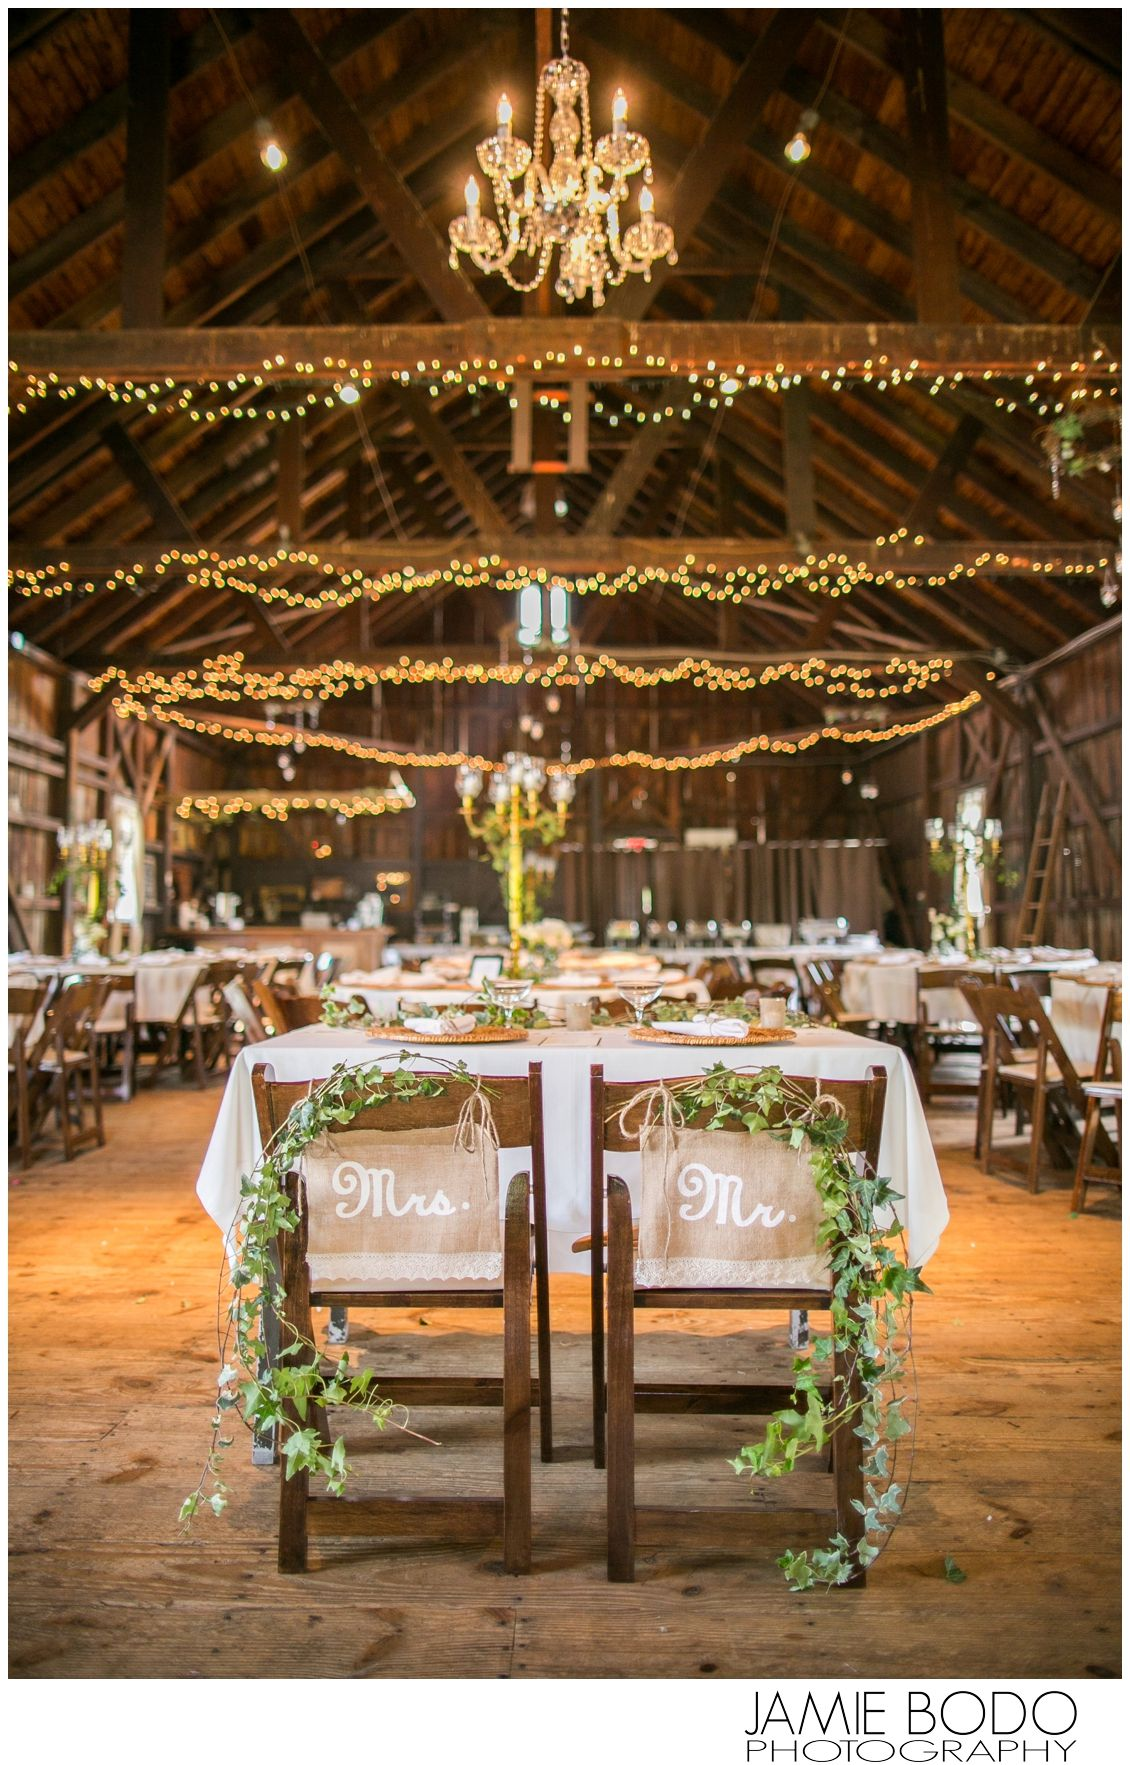 Rodes Barn Wedding Published In The Knot New Jersey Magazine